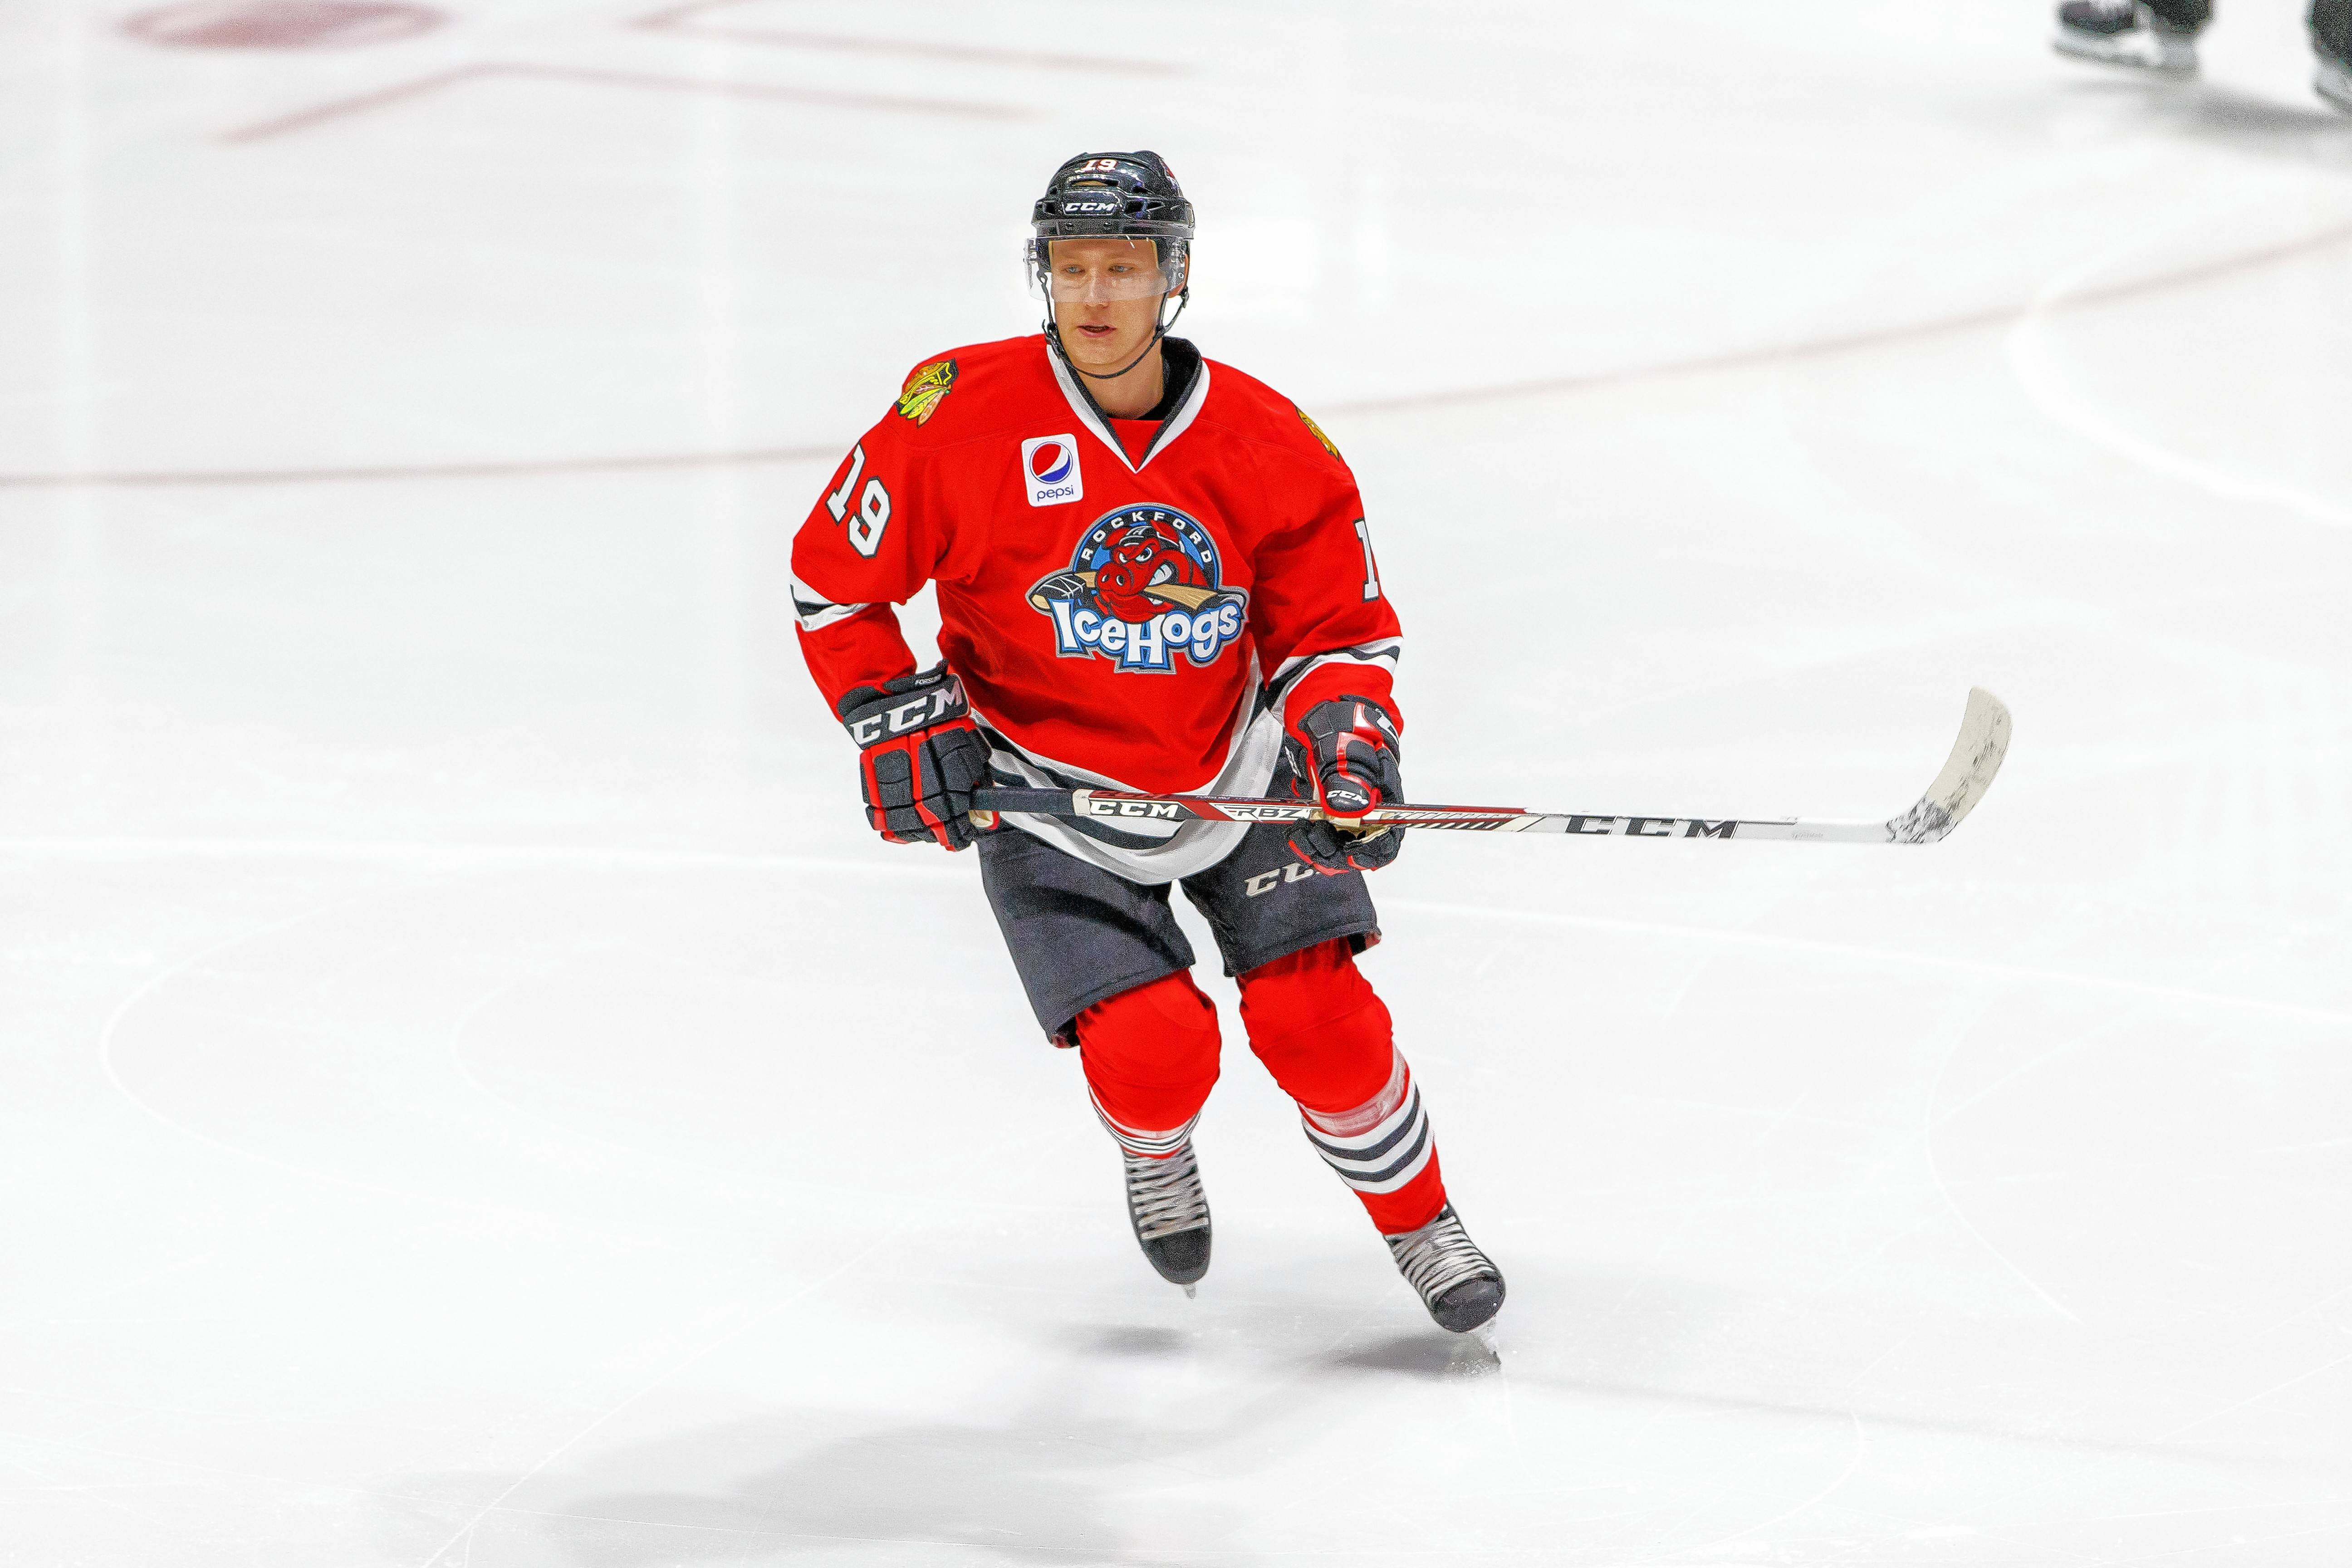 Blackhawks still have faith in young defenseman Forsling